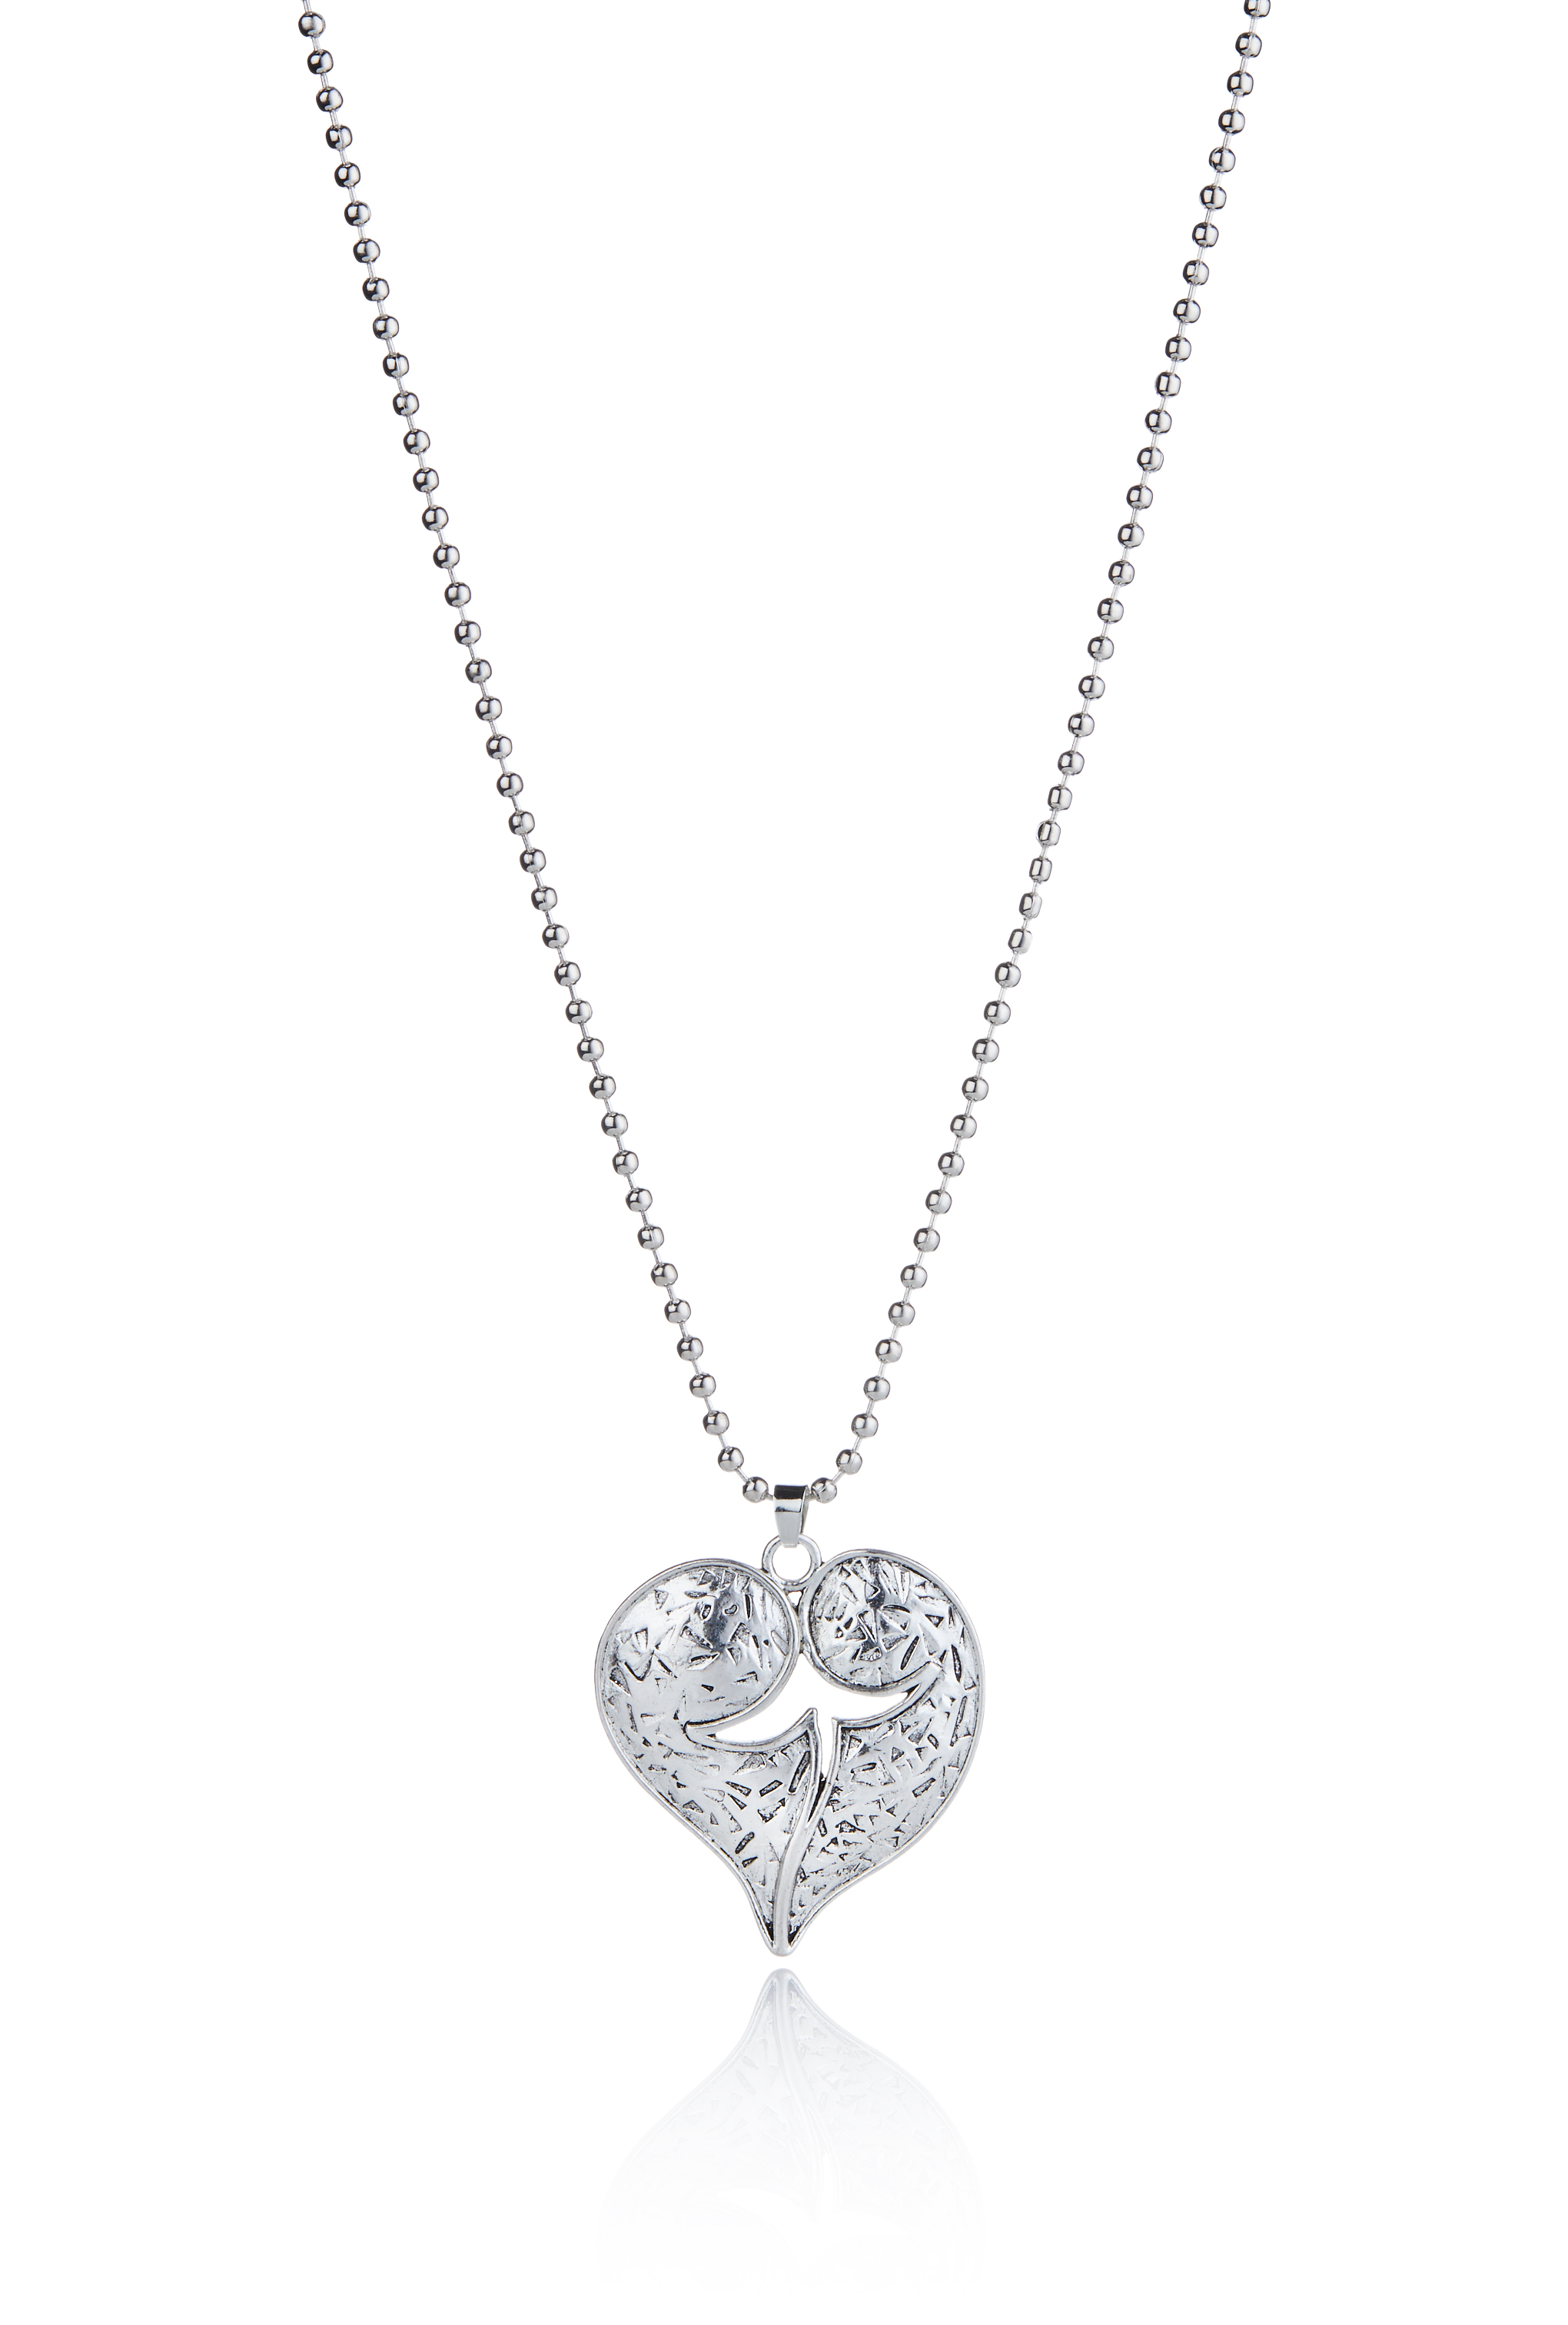 Engraved large heart pendant ask jewellery engraved large heart pendant mozeypictures Gallery